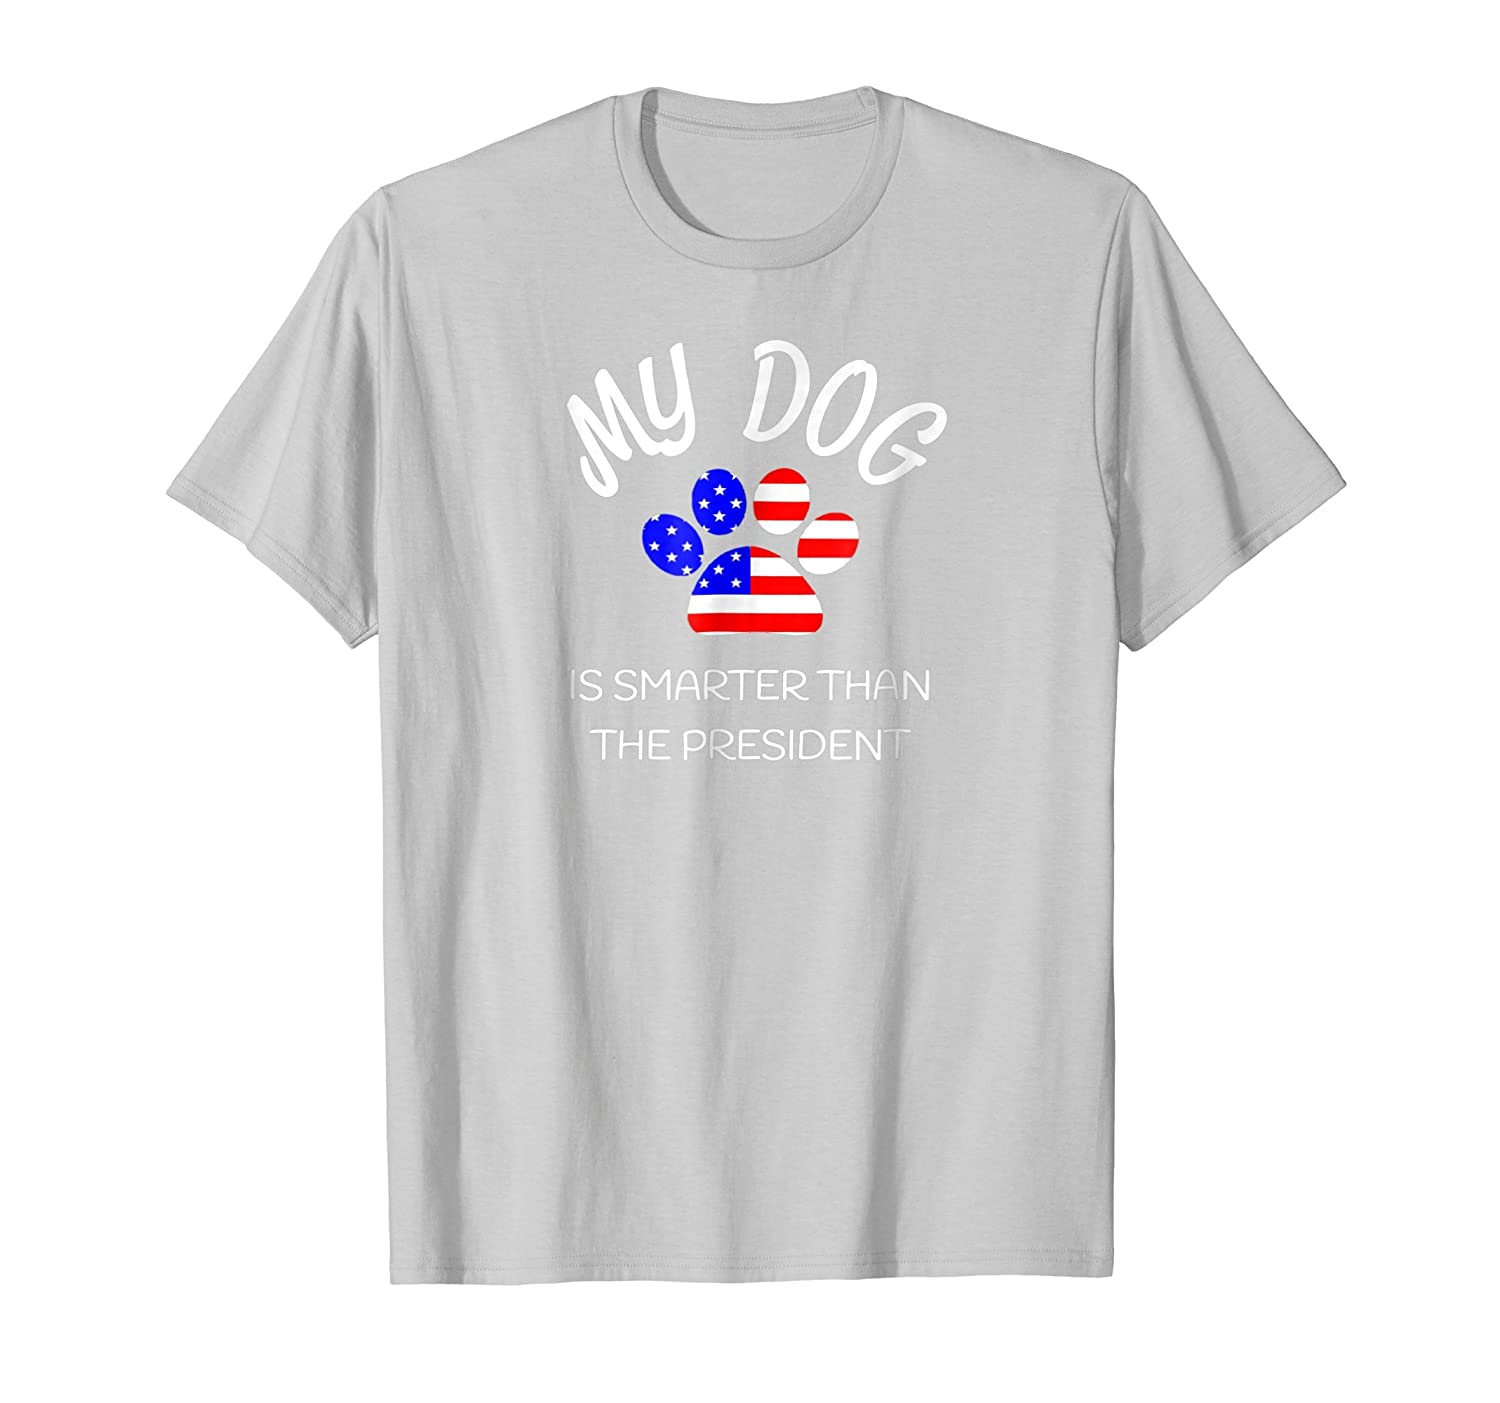 My Dog Is Smarter Than The President Shirt Funny Pet Novelty-AZP